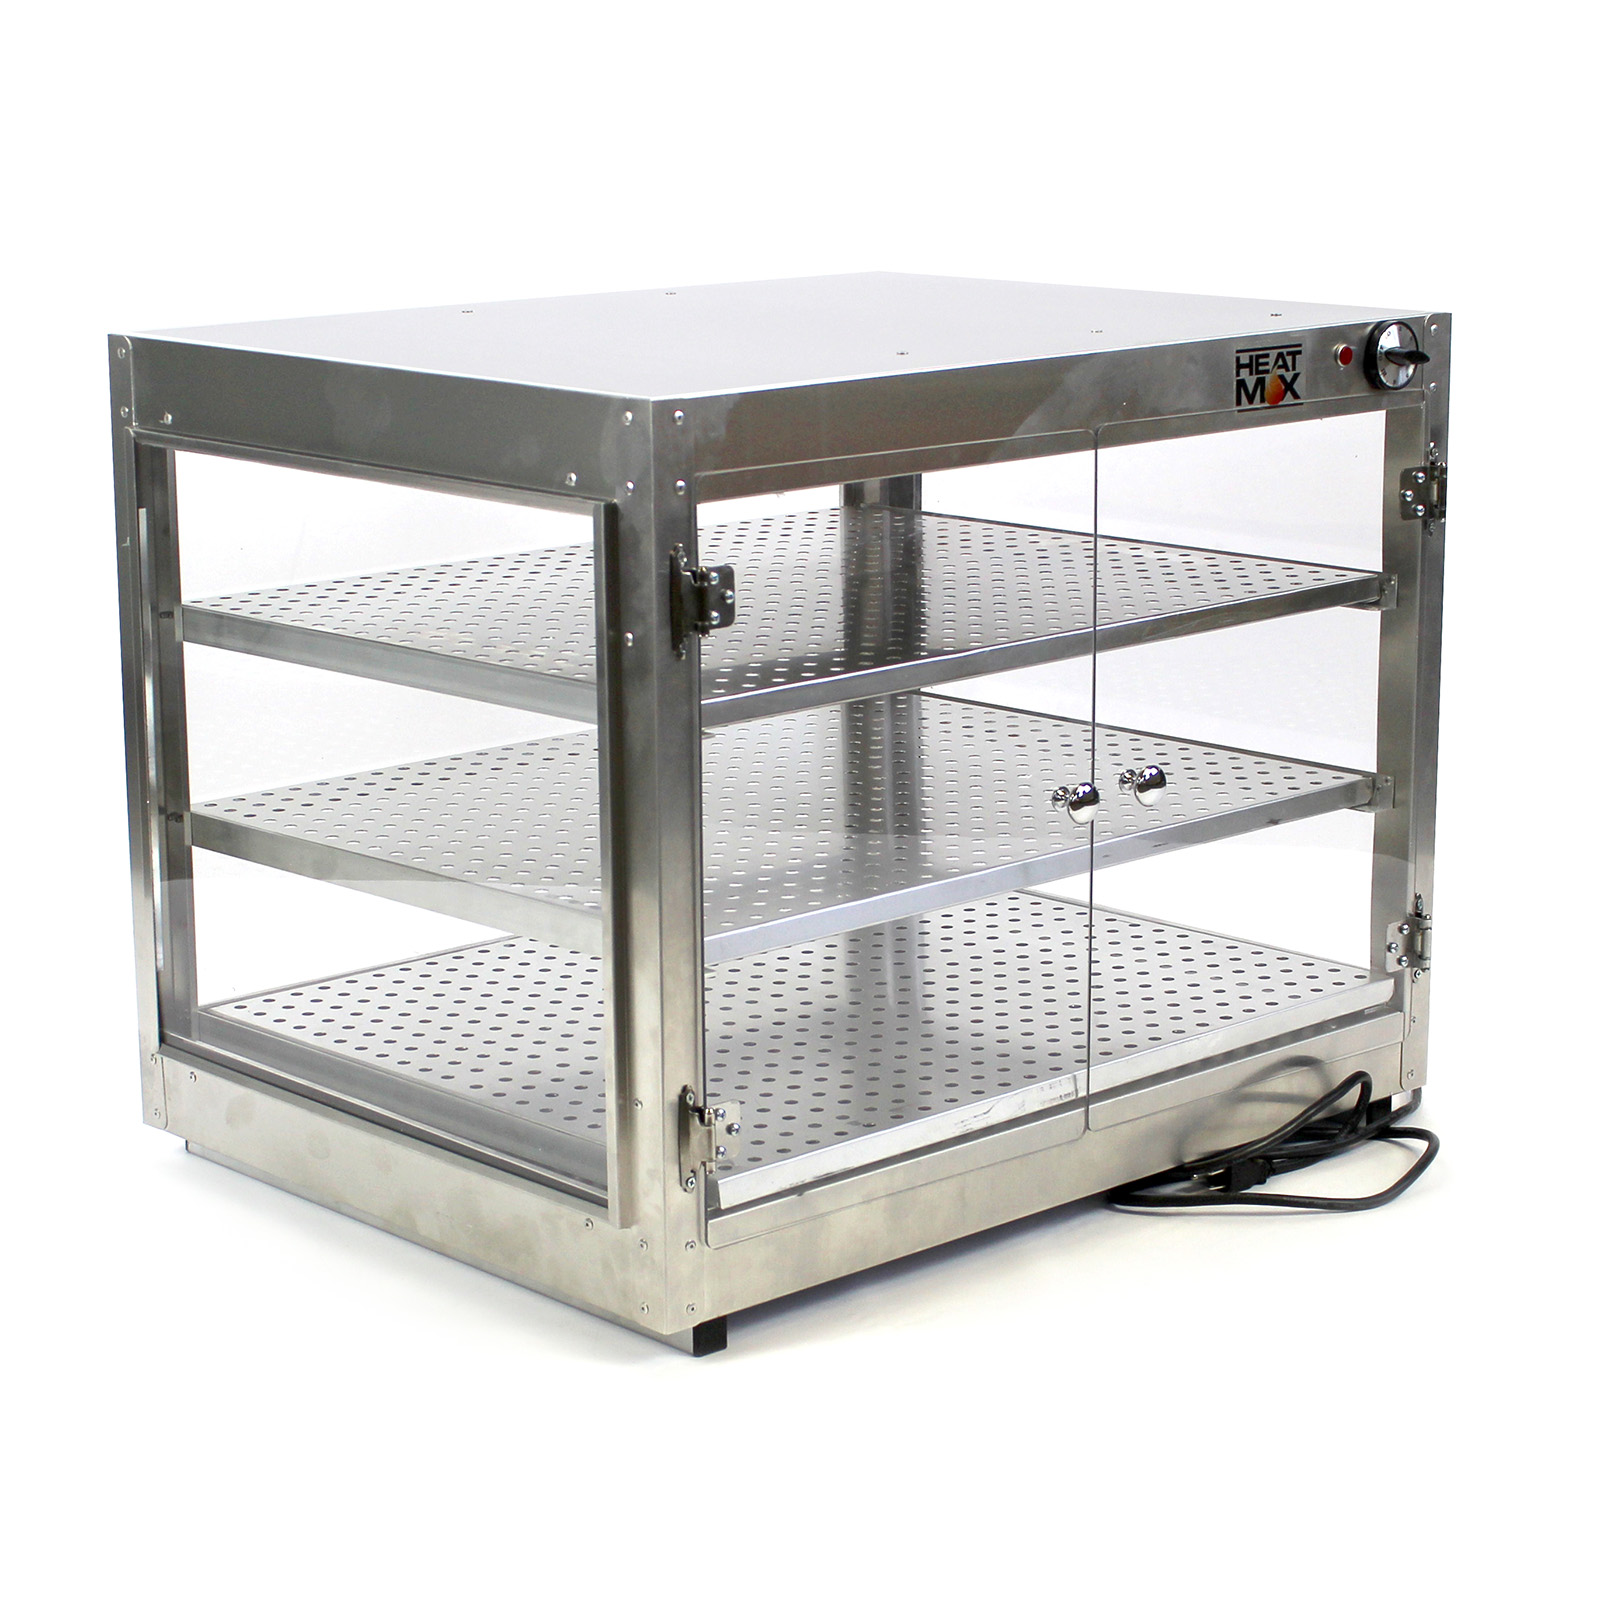 HeatMax Commercial 30 x 24 x 24 Countertop Food Pizza Pastry ...